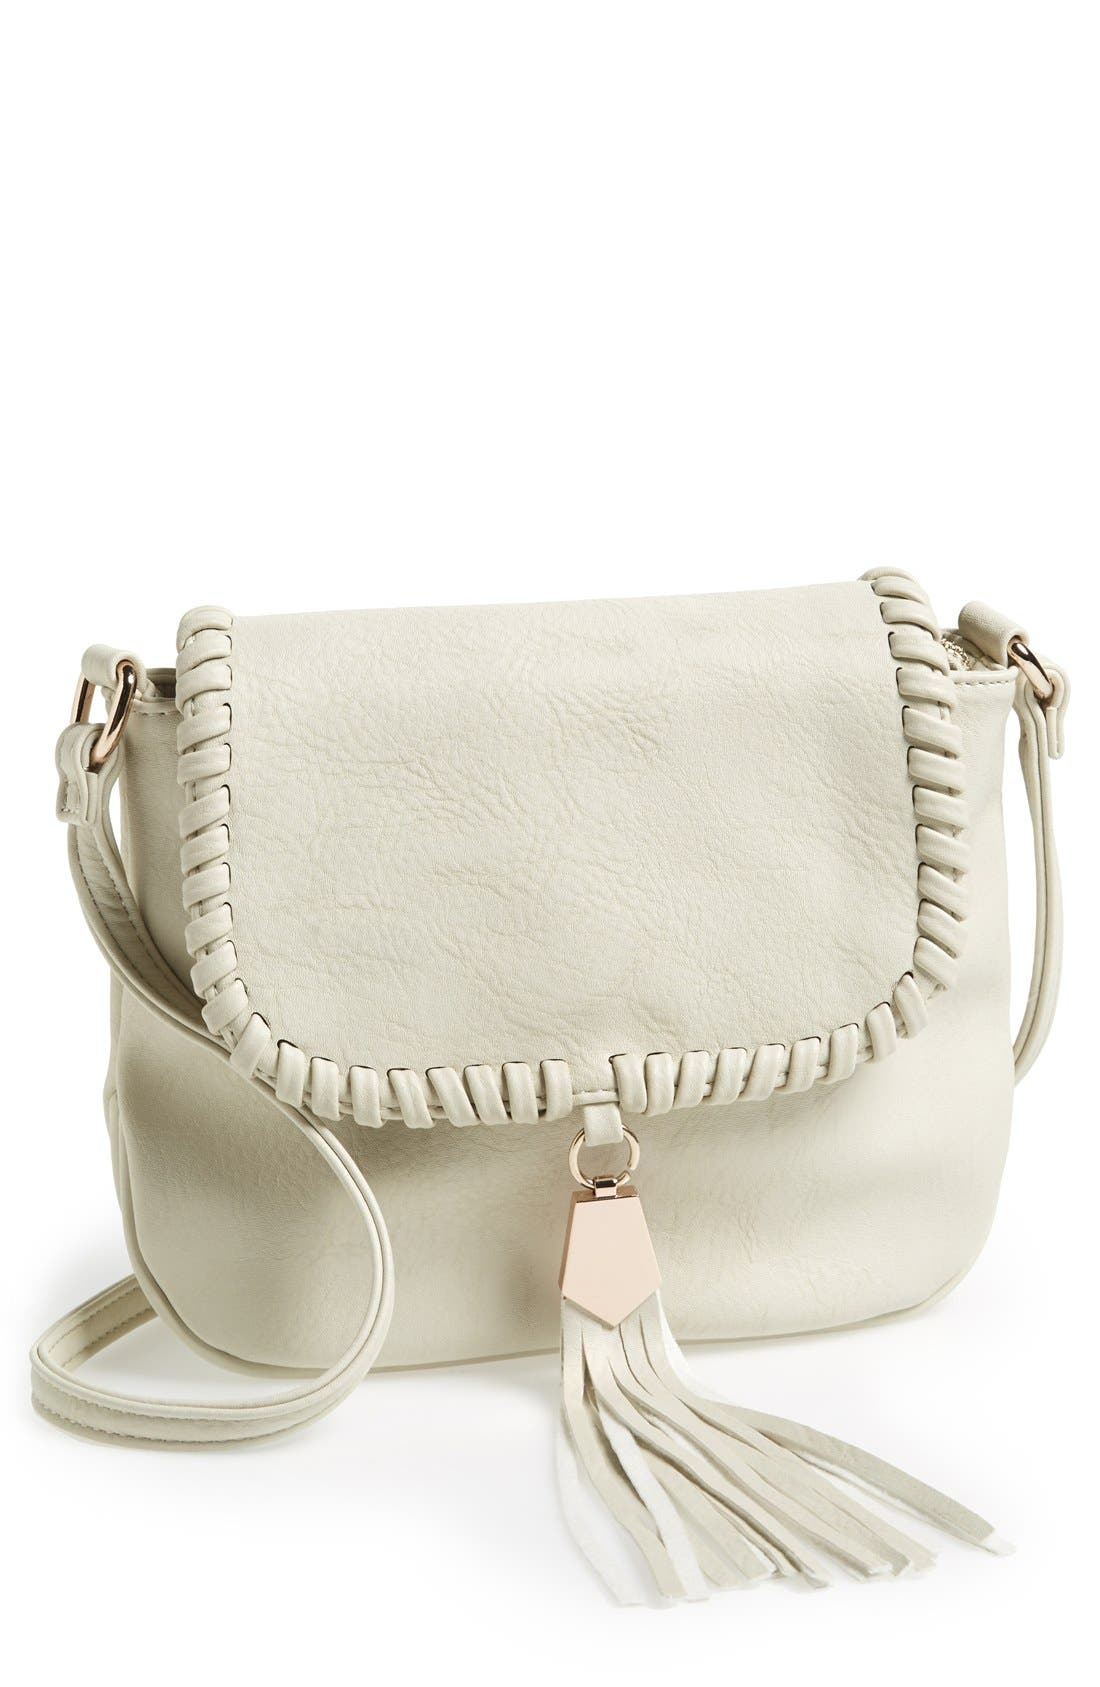 'Arlingtone' Crossbody Bag,                         Main,                         color, Bone